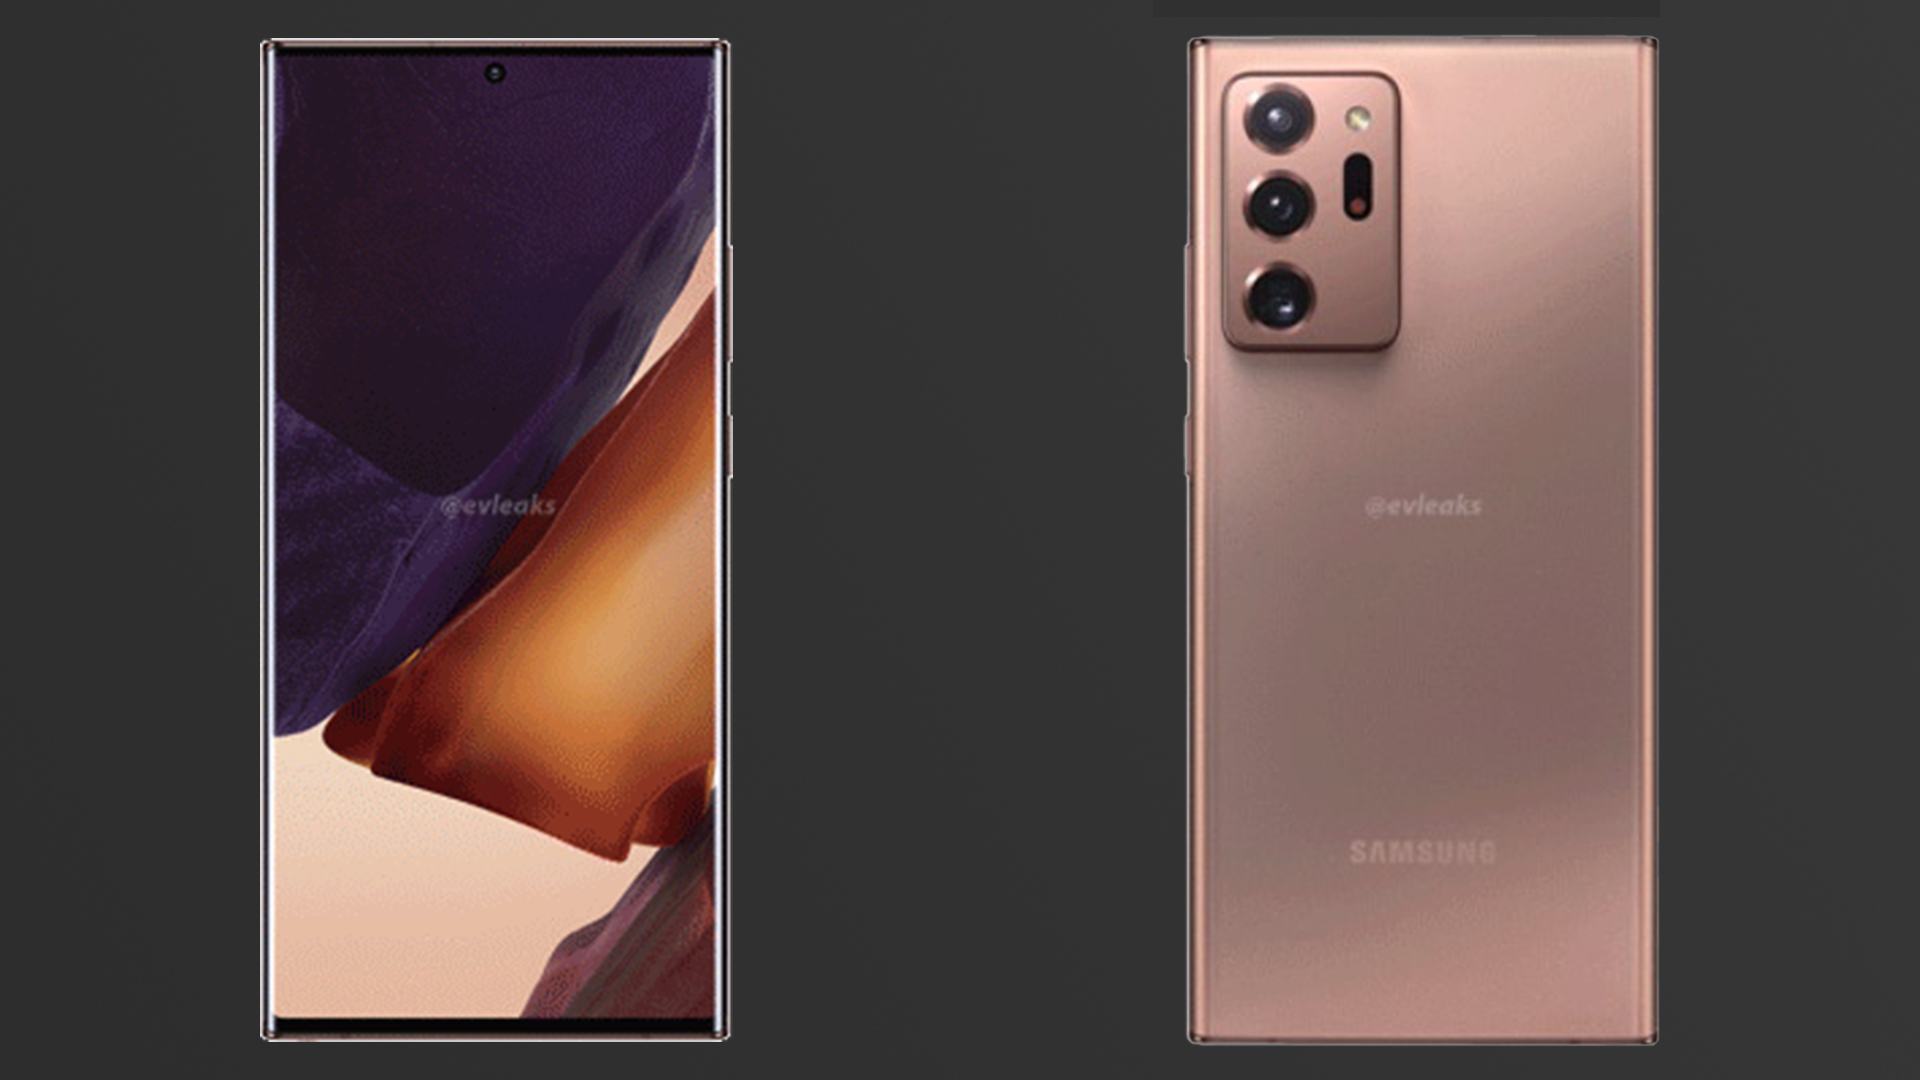 Here S The First Look At A 360 Degree Galaxy Note 20 Ultra Render Sammobile